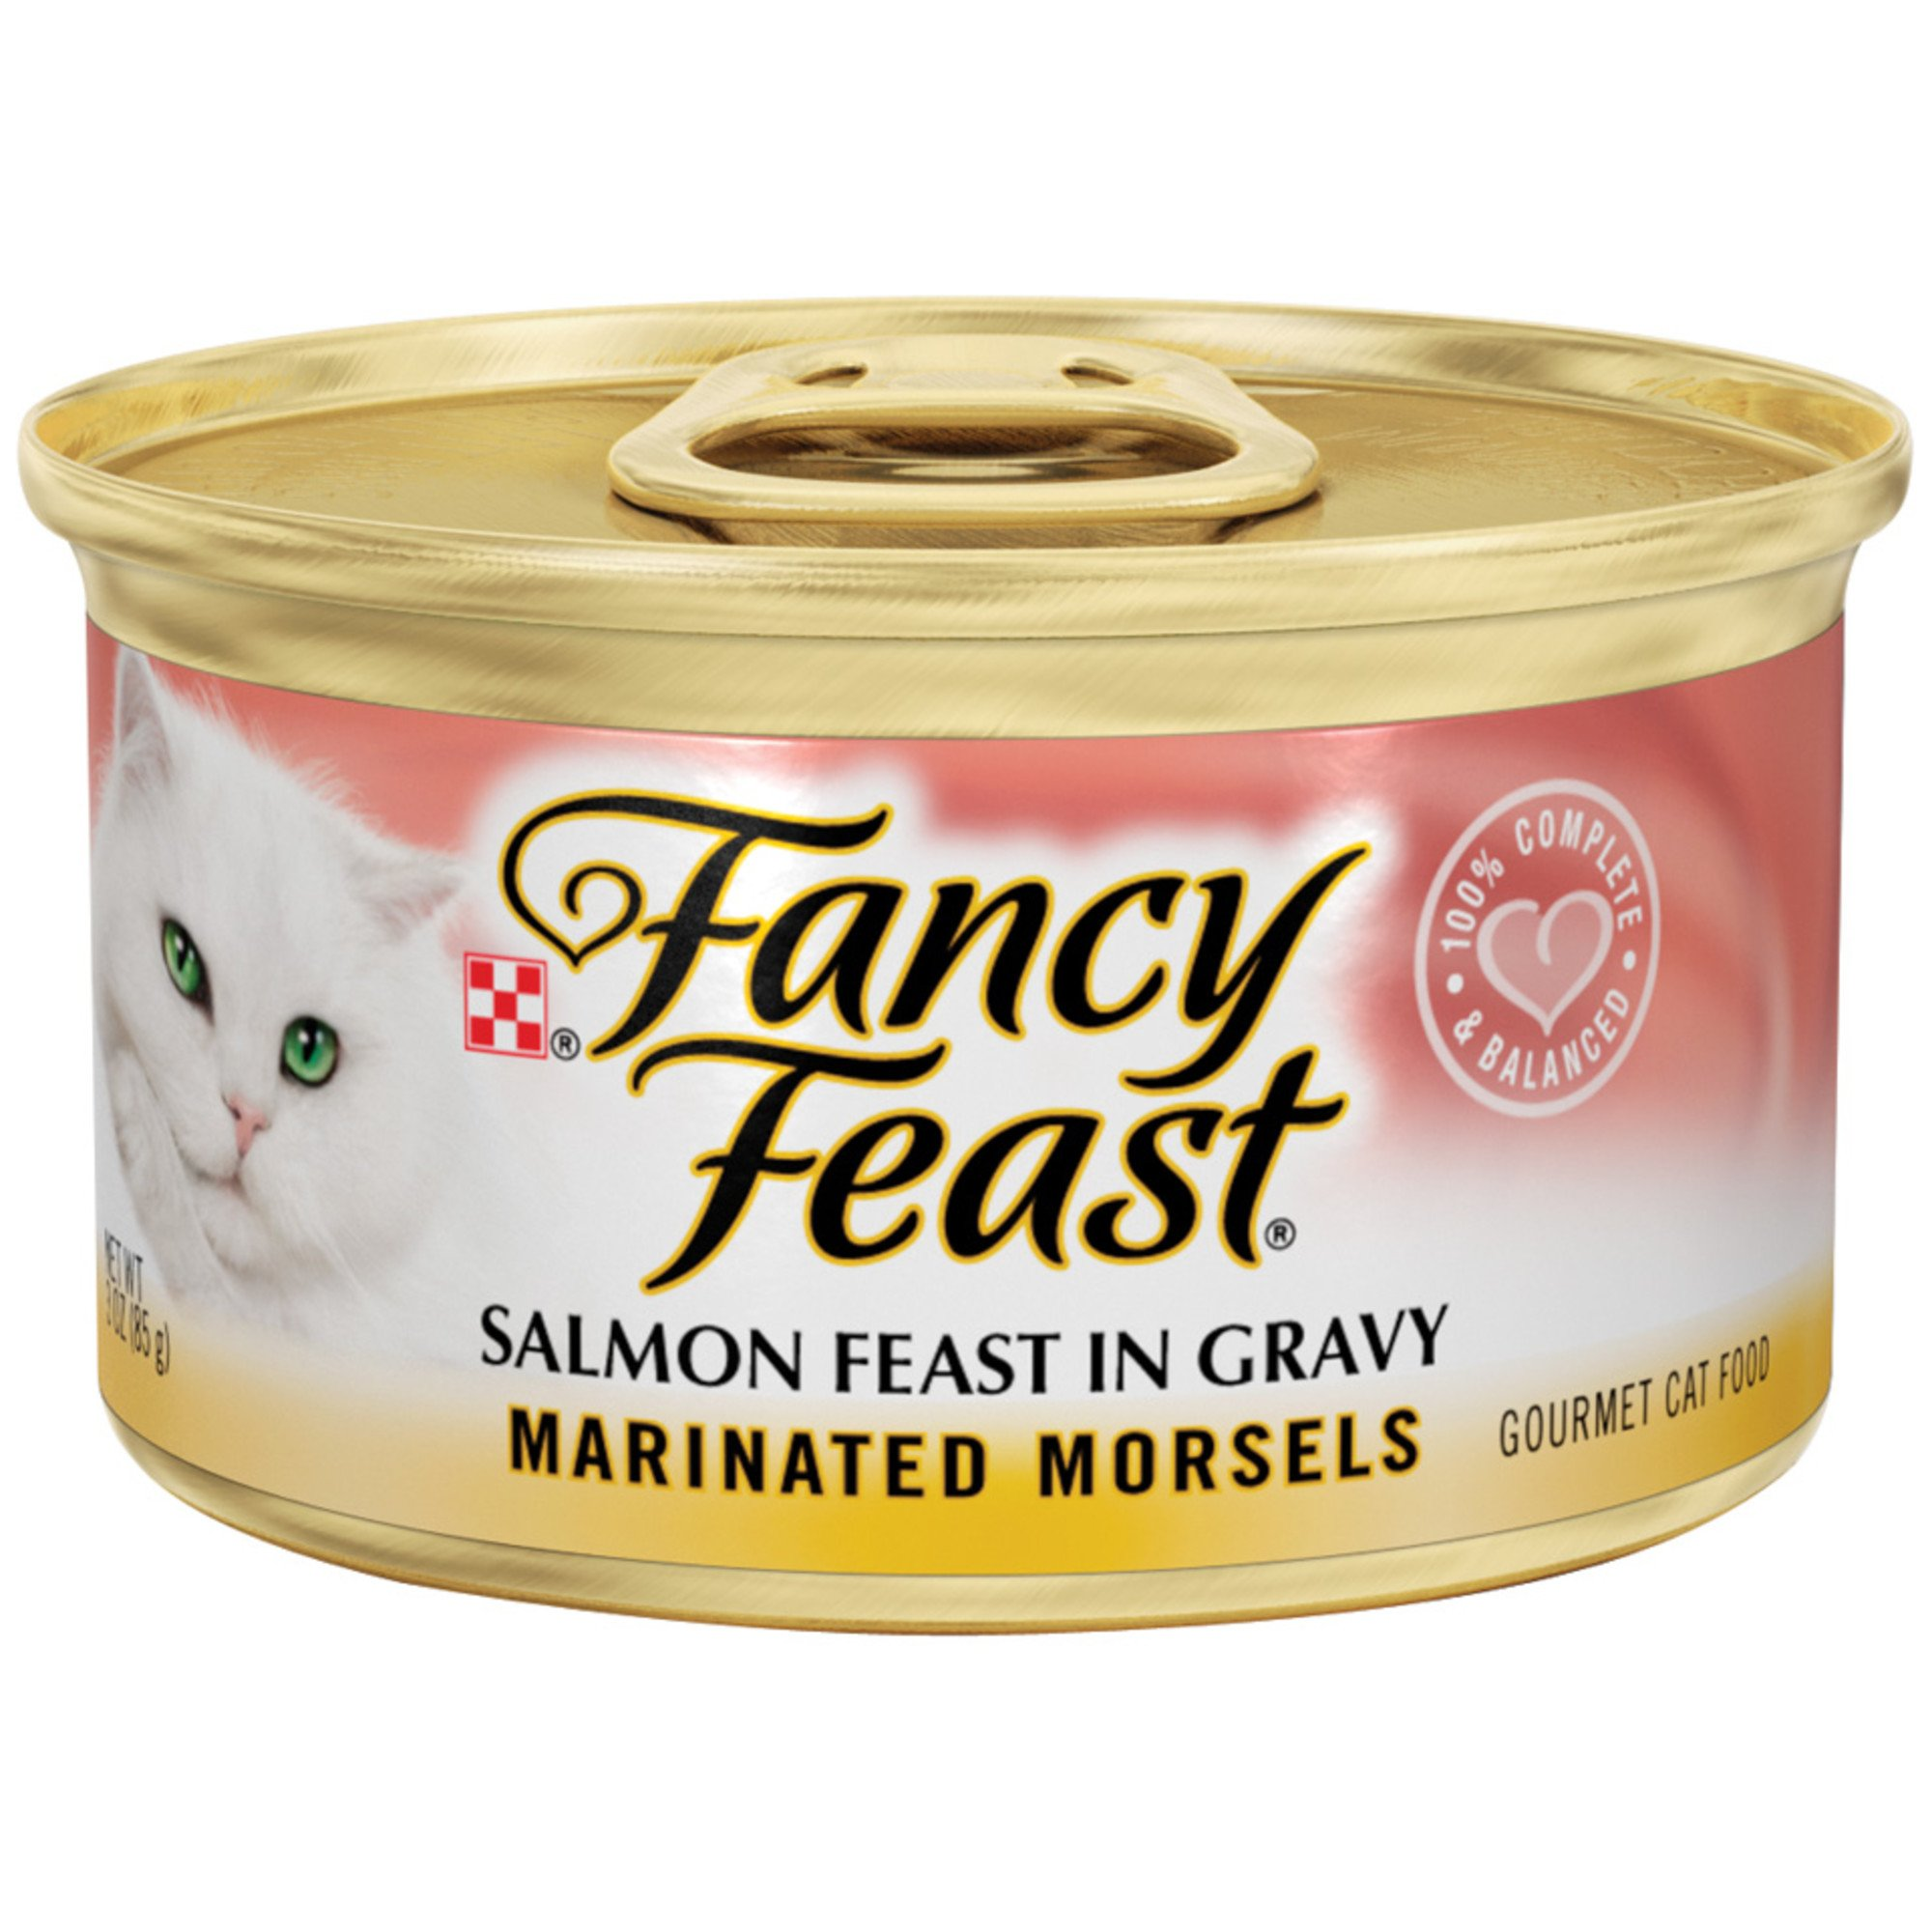 Fancy Feast Salmon Feast Marinated Gourmet Cat Food